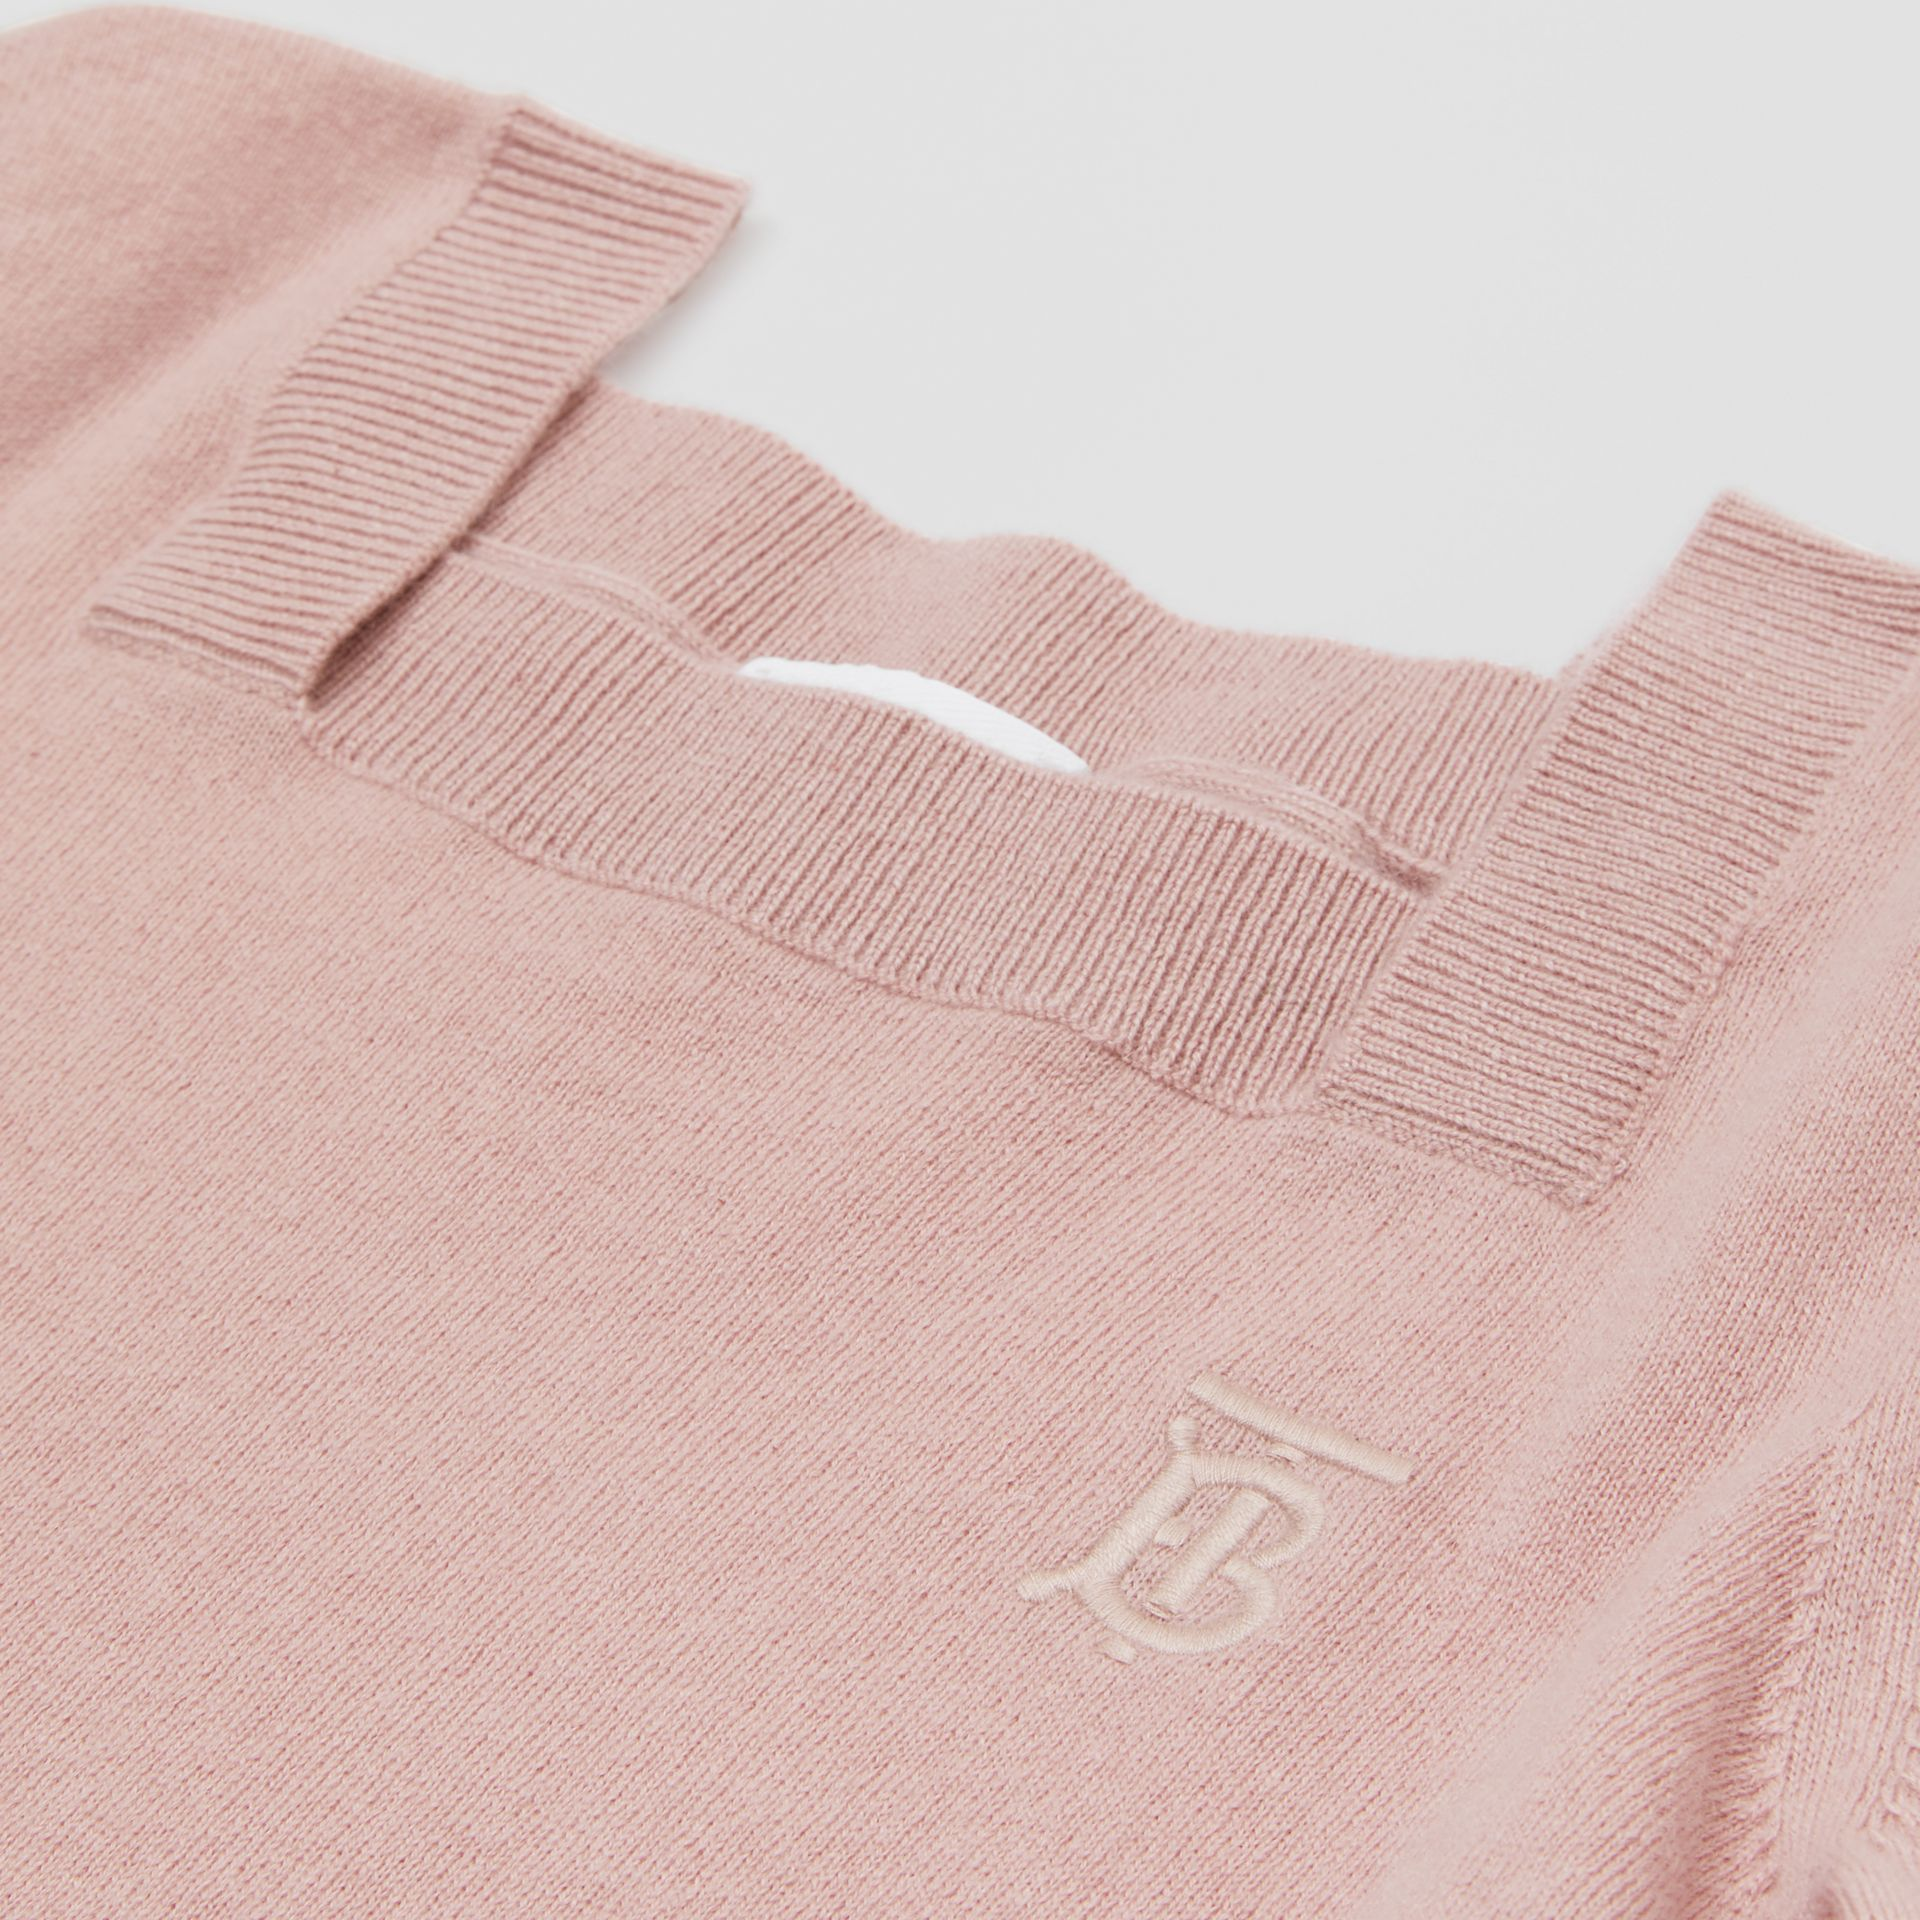 Monogram Motif Cashmere Sweater in Lavender Pink | Burberry - gallery image 1